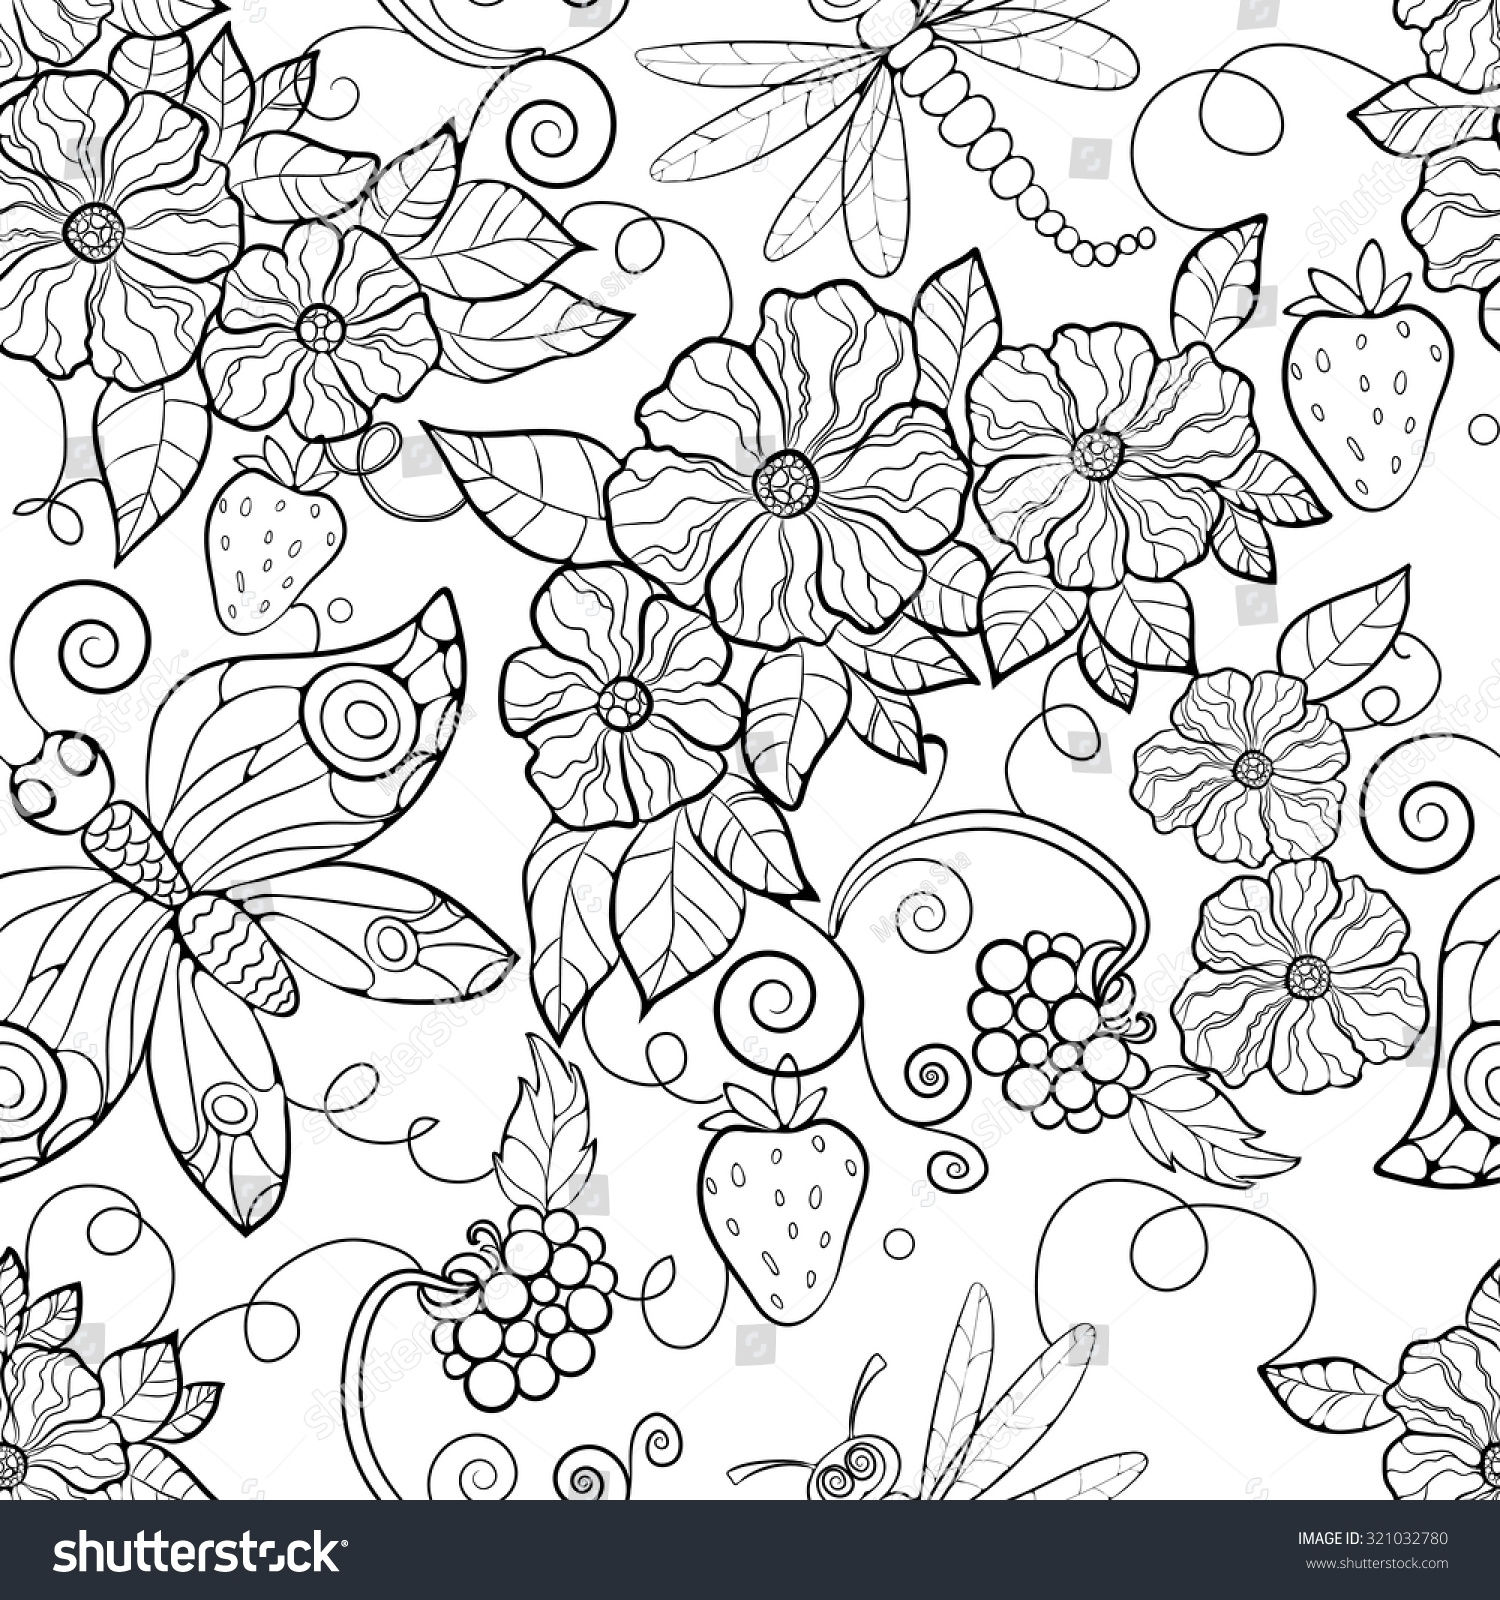 1500x1600 Inspiring Printable Butterfly Pattern Flowers Coloring Pages